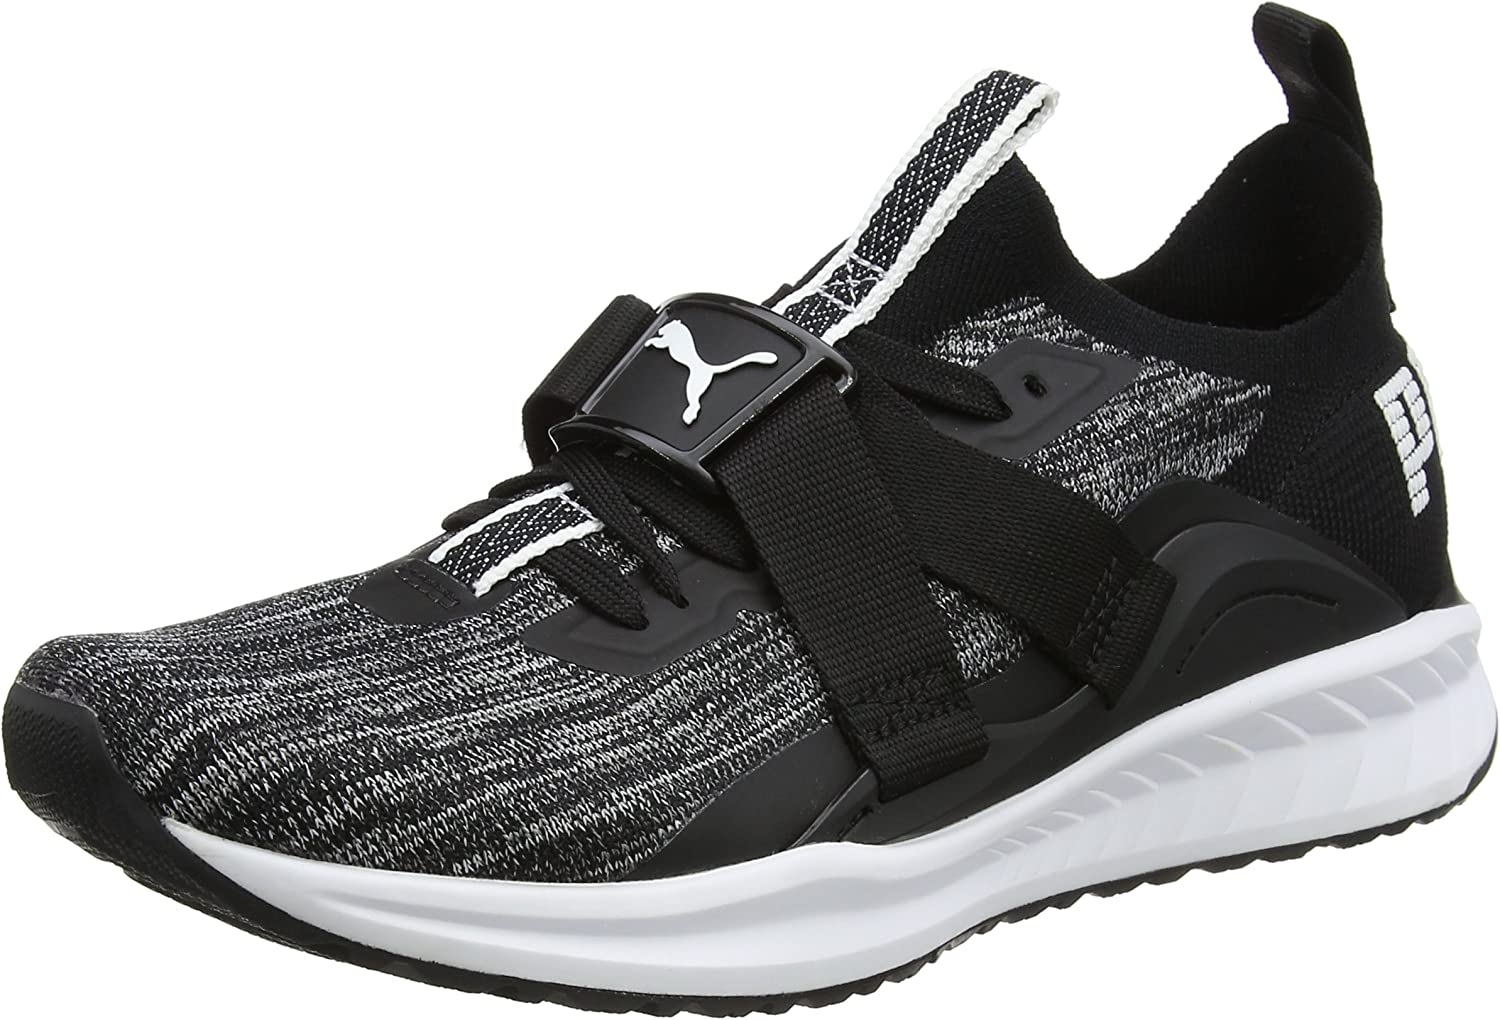 PUMA Men's Ignite Evoknit Lo 2, Black White